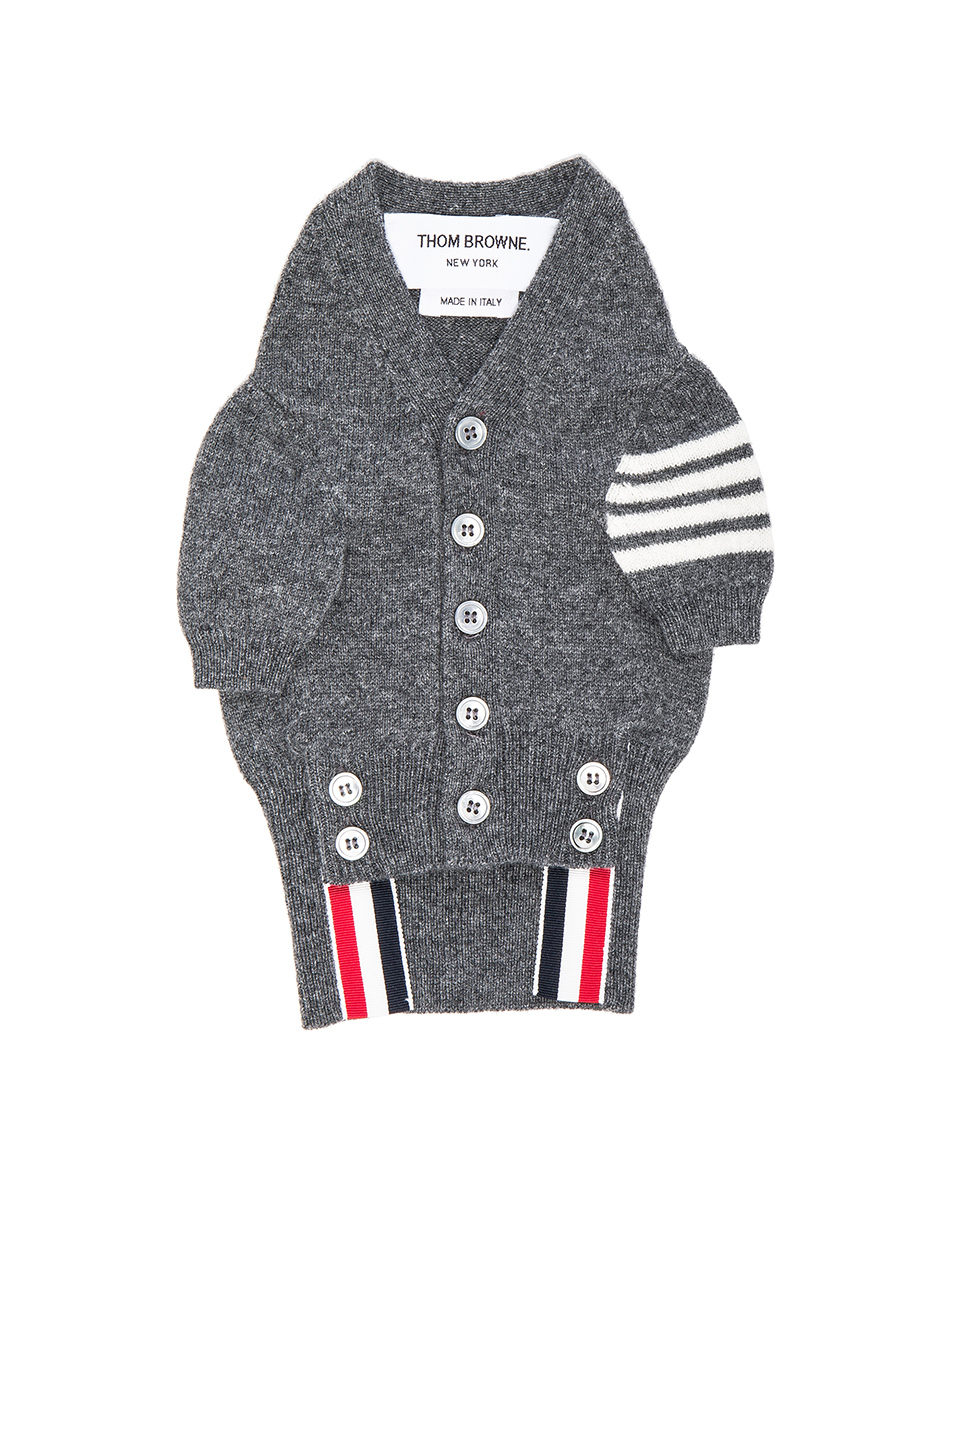 Thom Browne Cashmere Canine Cardigan in Gray